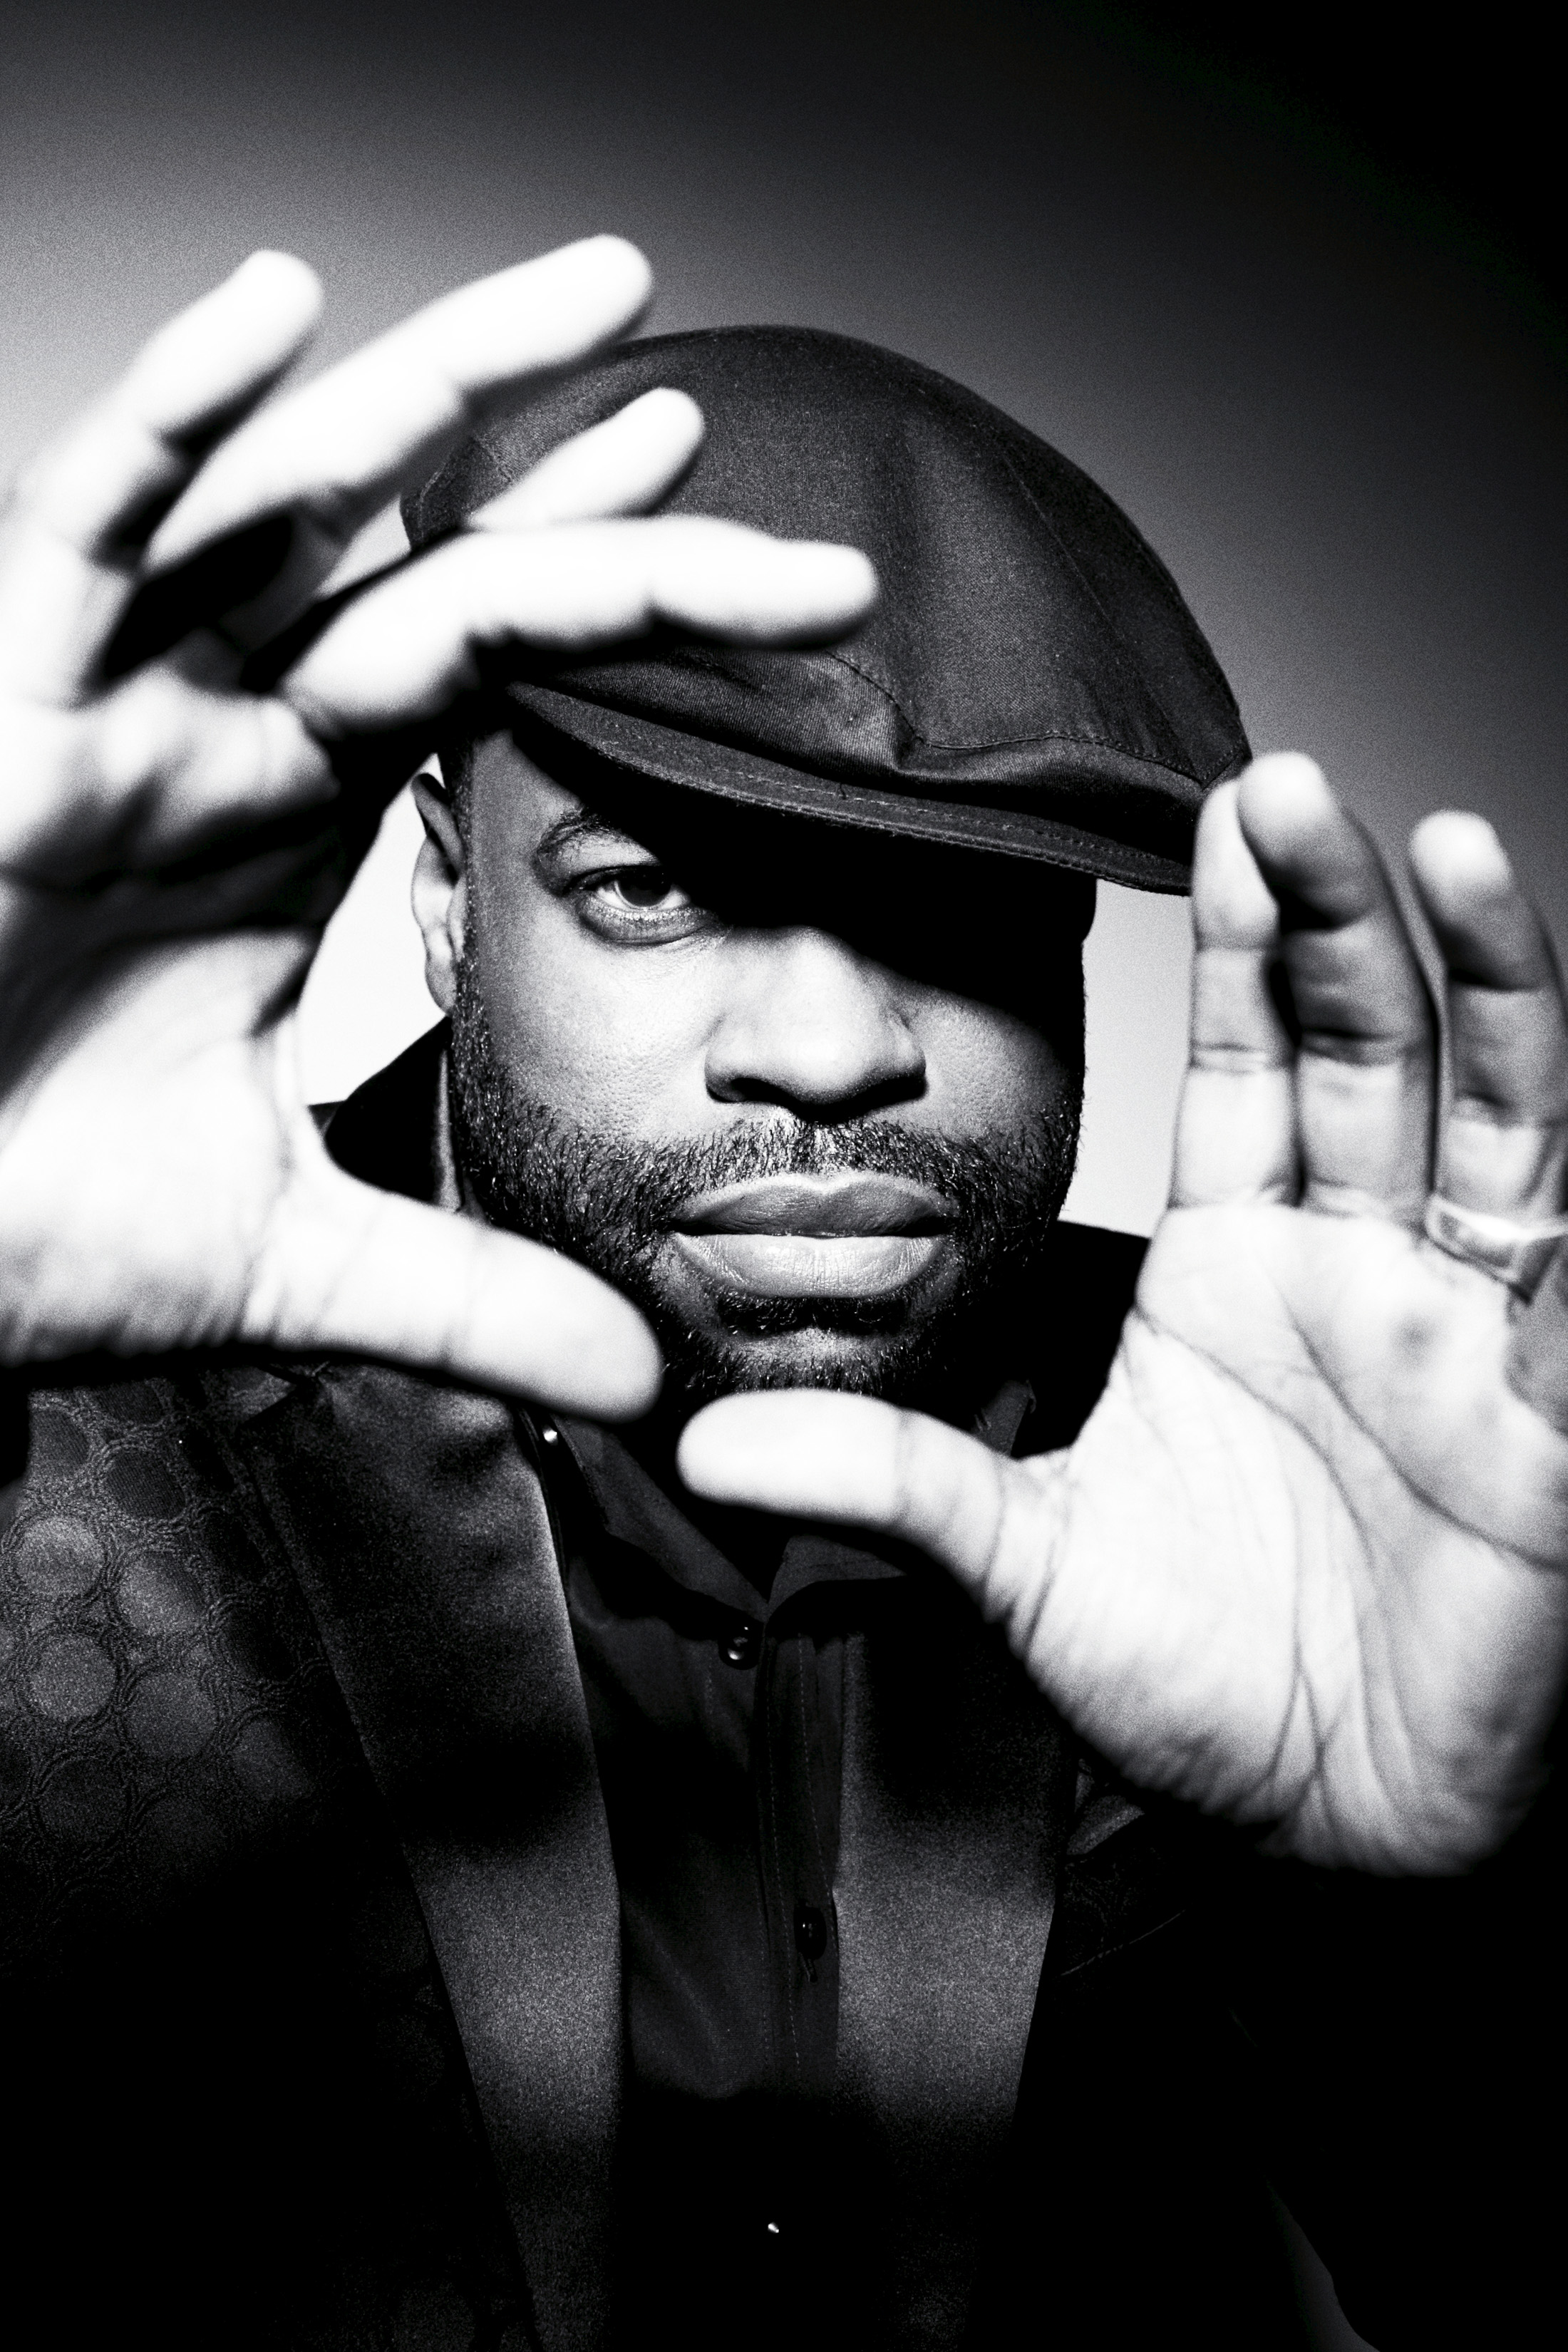 The Roots_Ben Watts Photographer_Rebecca Pietri Stylist _Black Thought_B:W_2.jpg